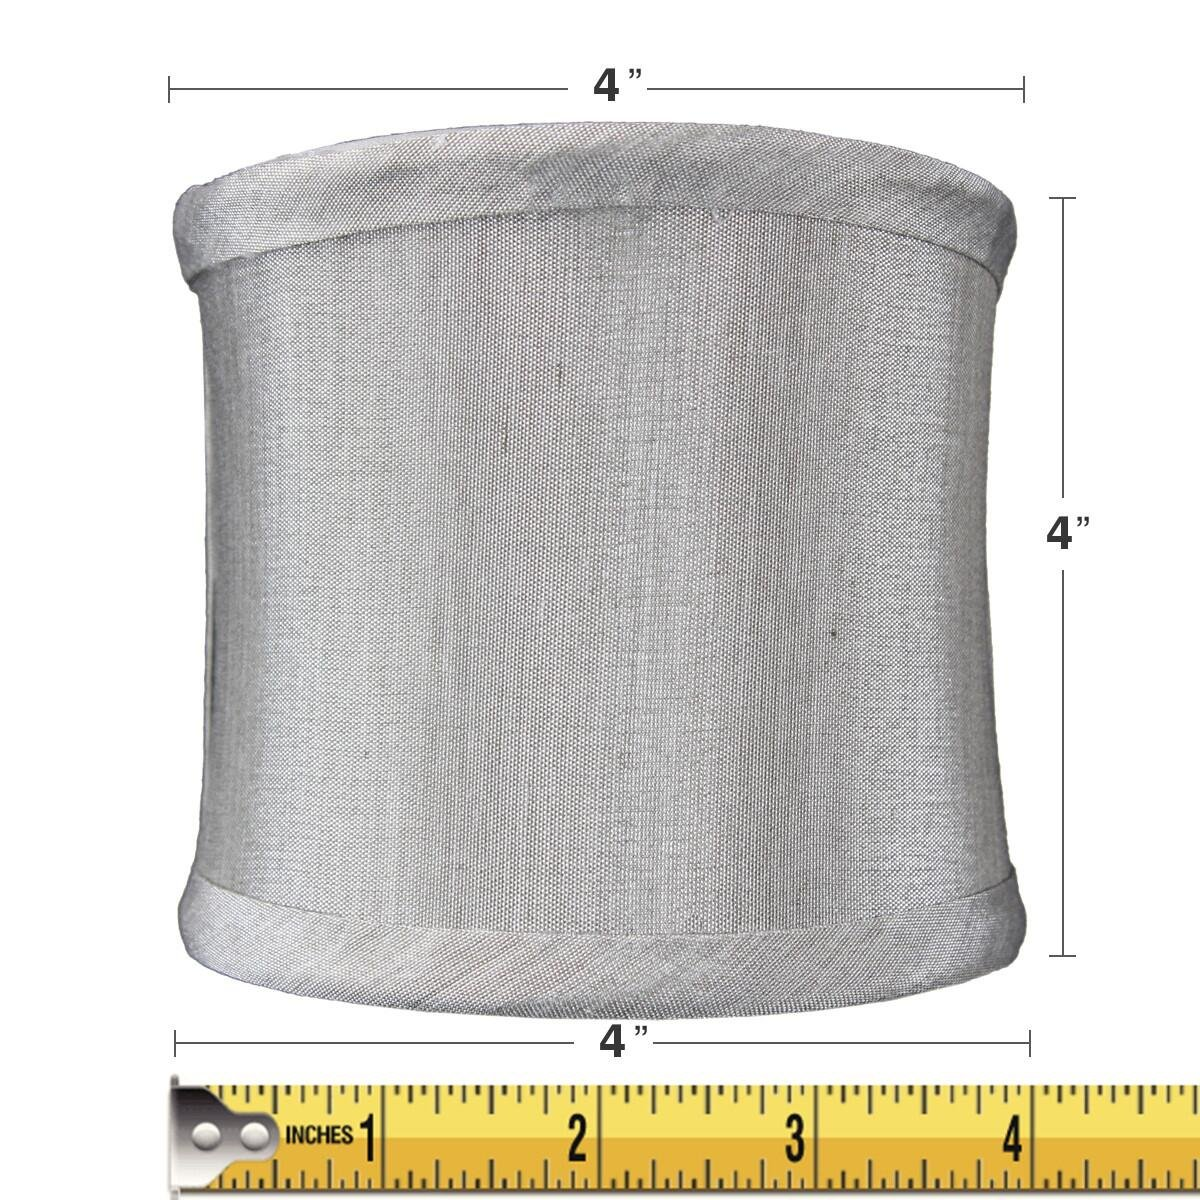 4x4x4 Grey Shantung Clip-On Sconce Half-Sconce Lampshade By Home Concept - Perfect for chandeliers, foyer lights, and wall sconces -Small, Grey by HomeConcept (Image #2)